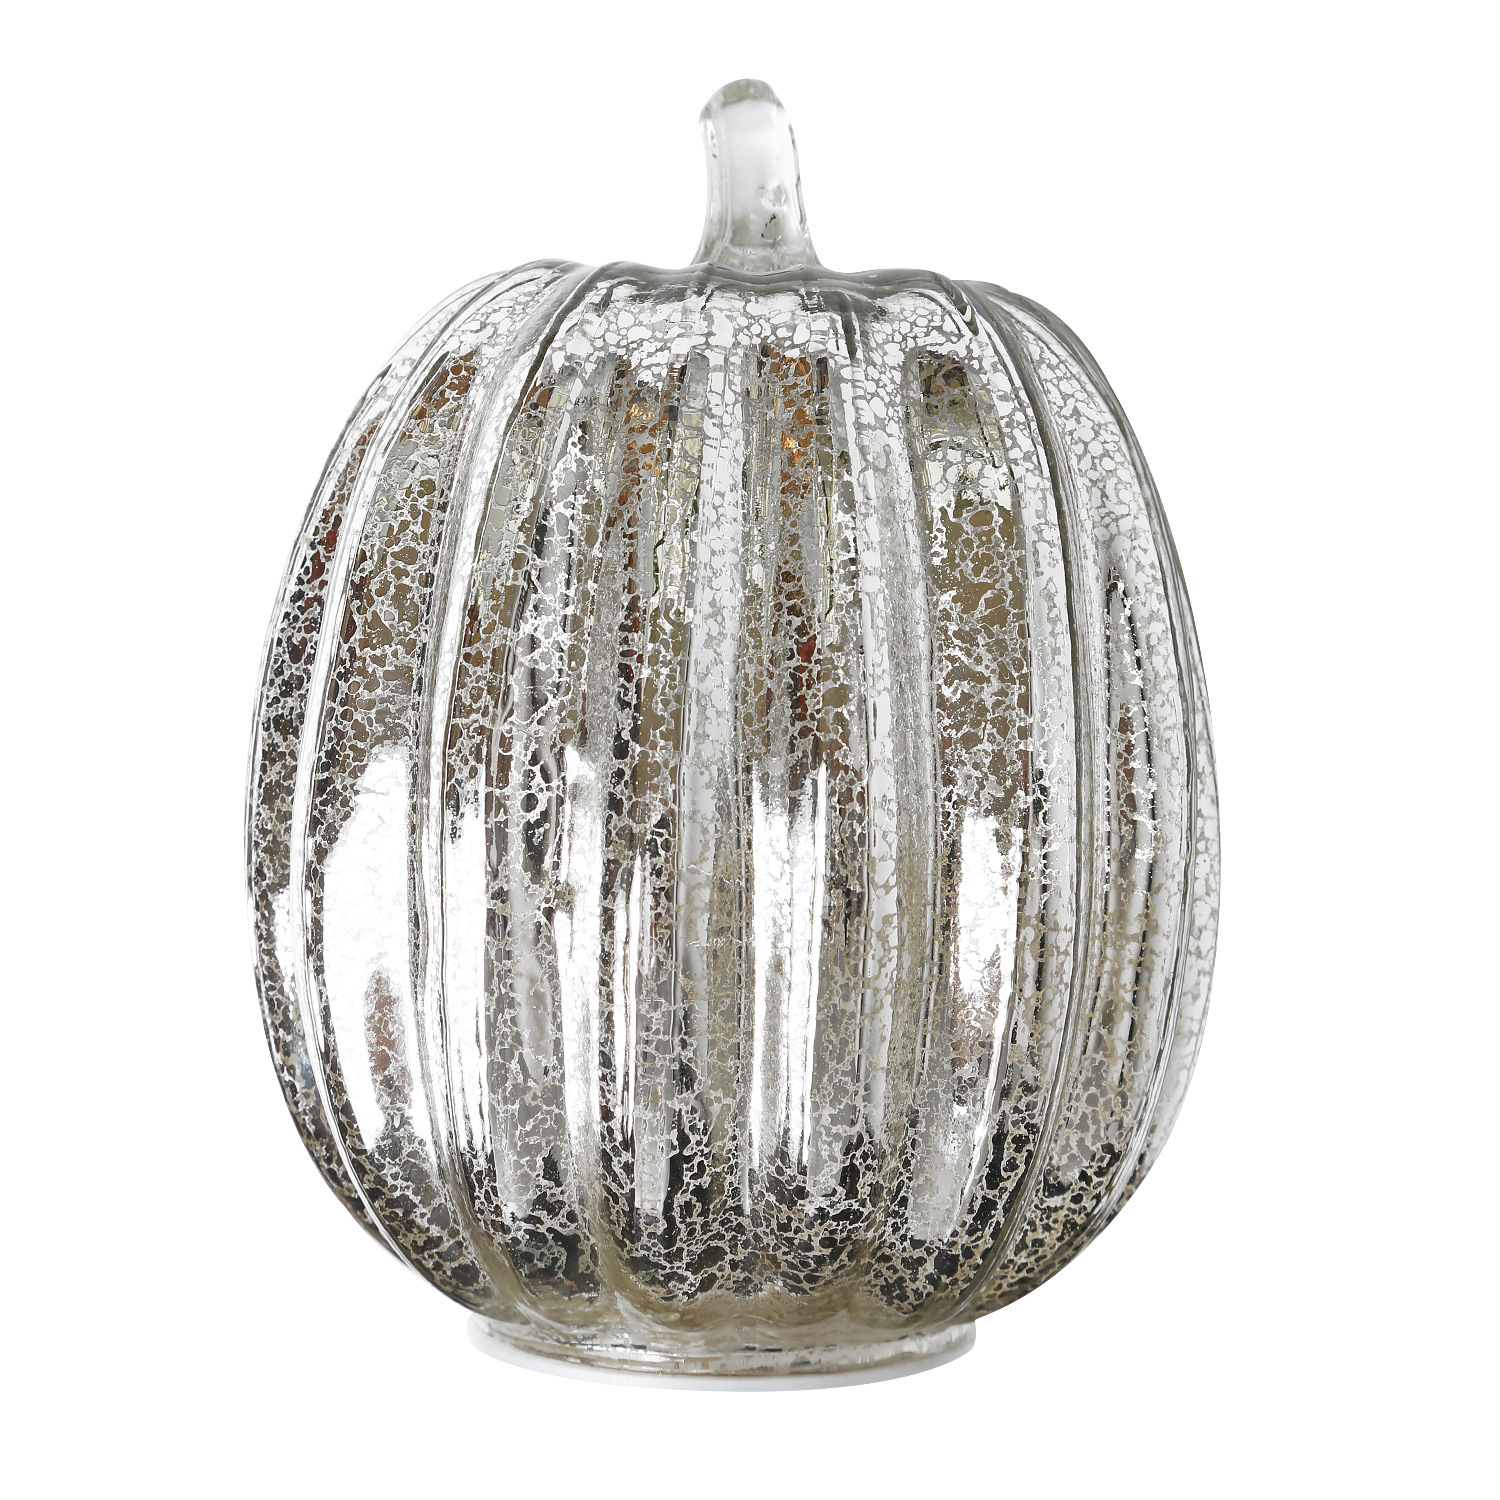 Glass Pumpkin Lamp for Halloween Ghost Party Festival Decorations  Silver 14*22cm